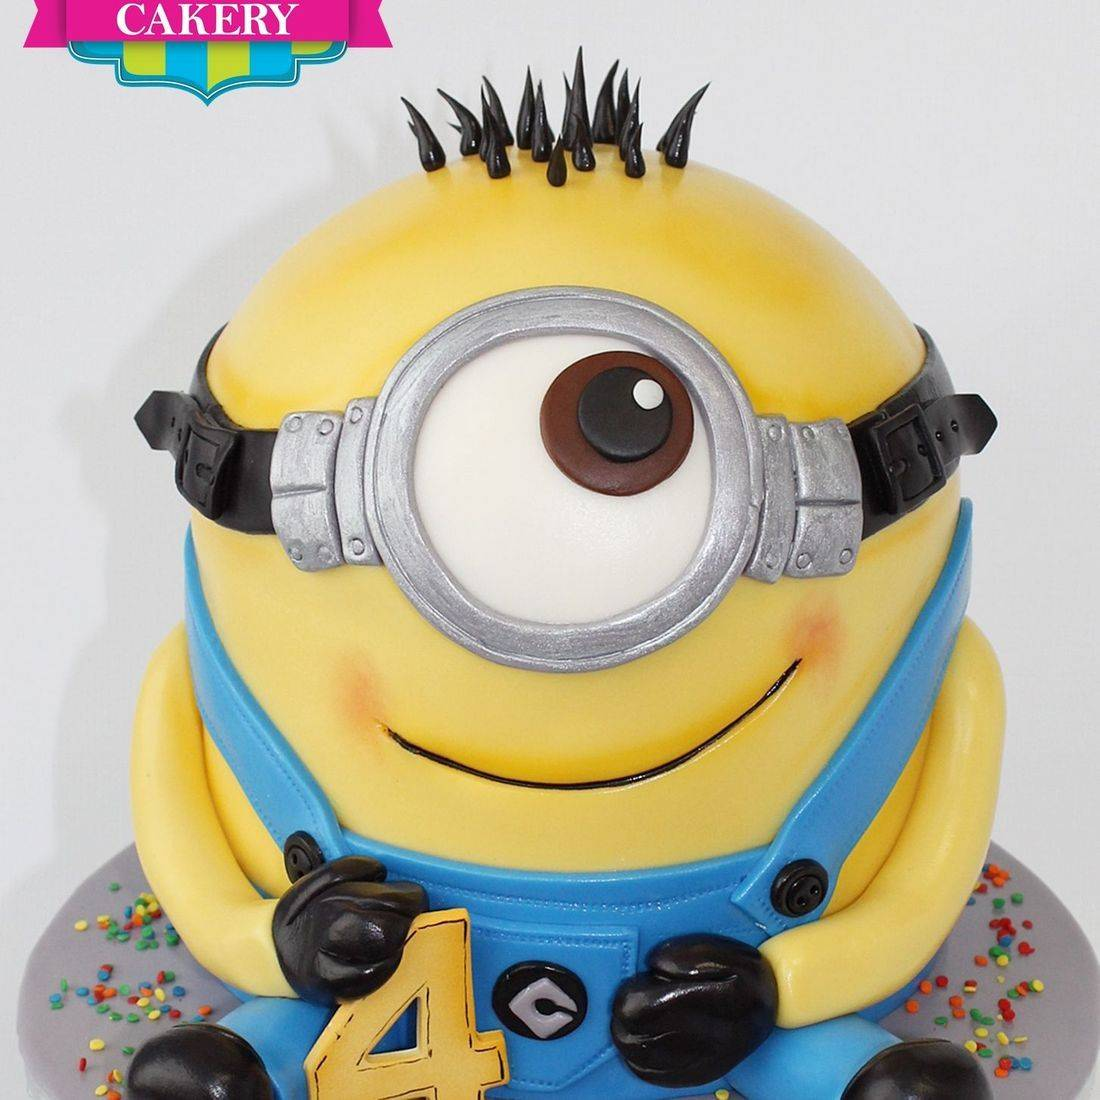 Little Man Minion  Carved Dimensional Cake Milwaukee